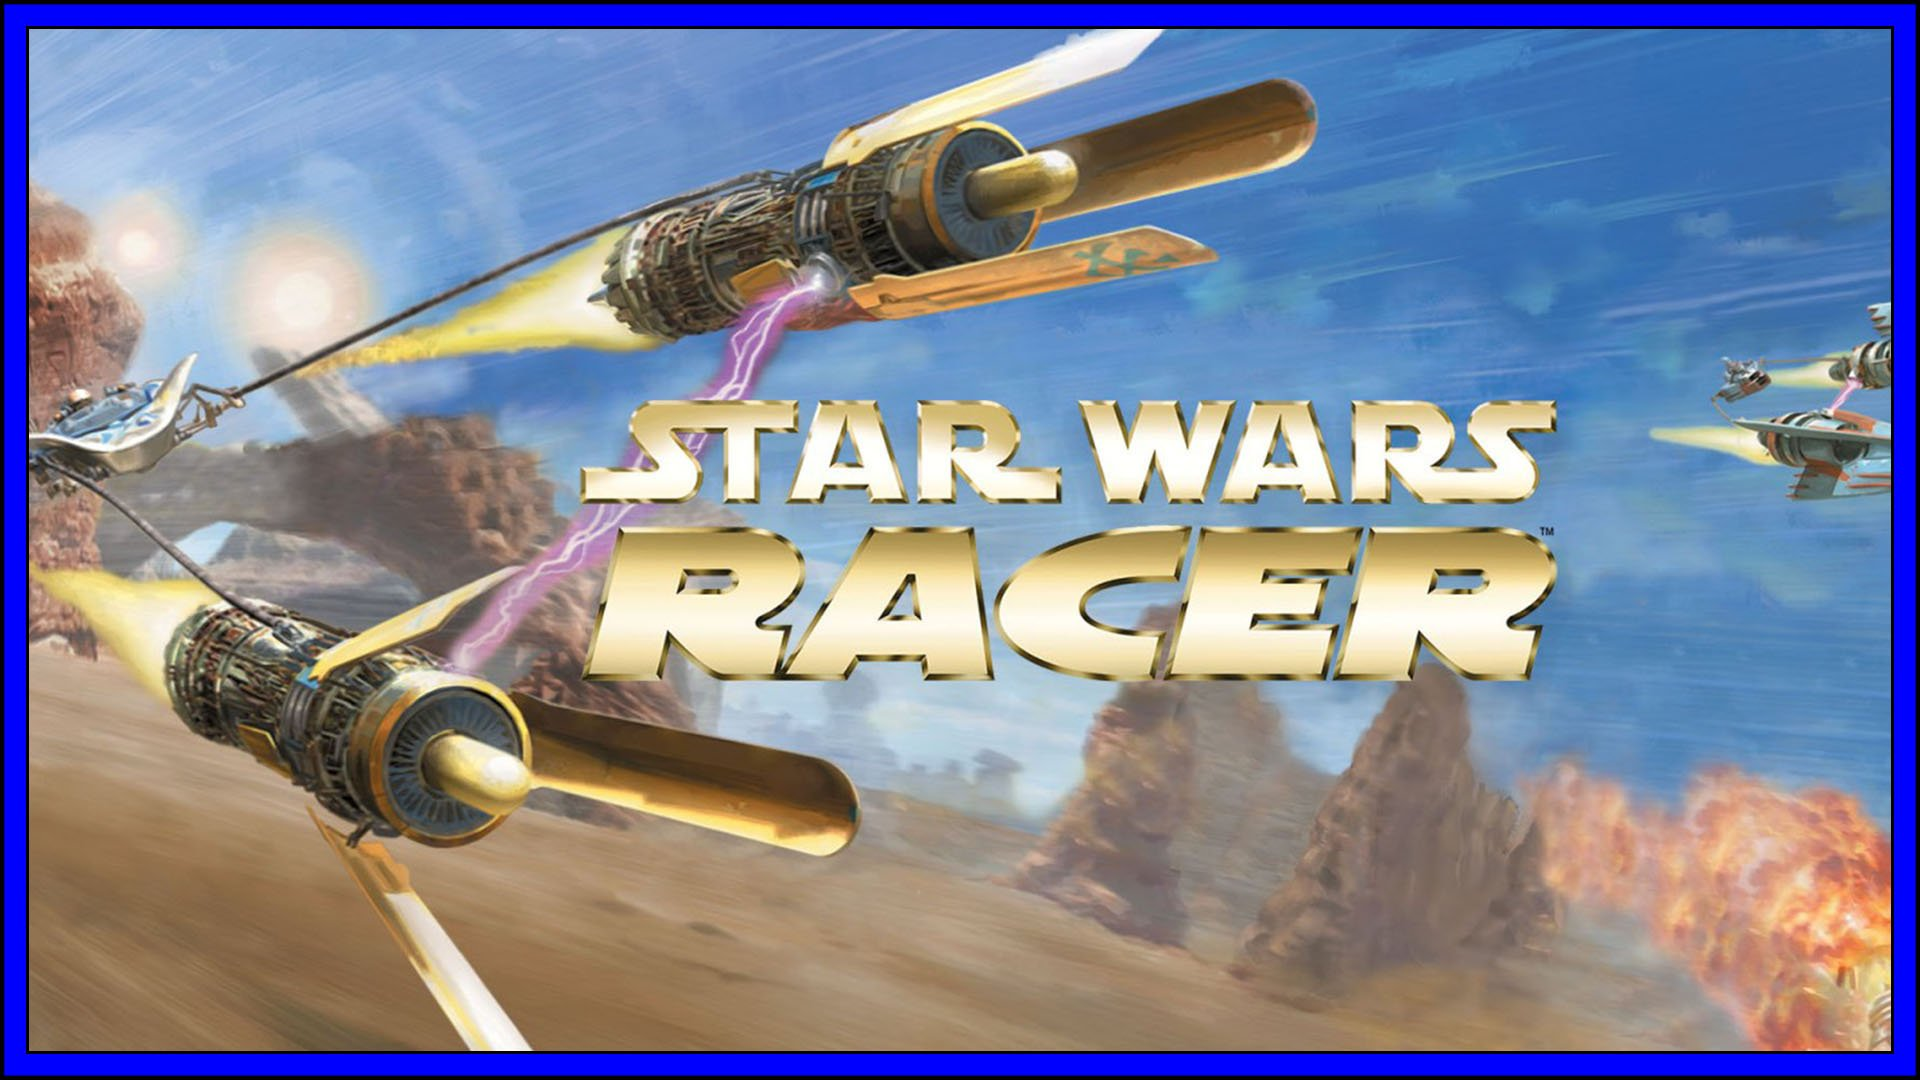 Star Wars Episode I: Racer (PS4) Review